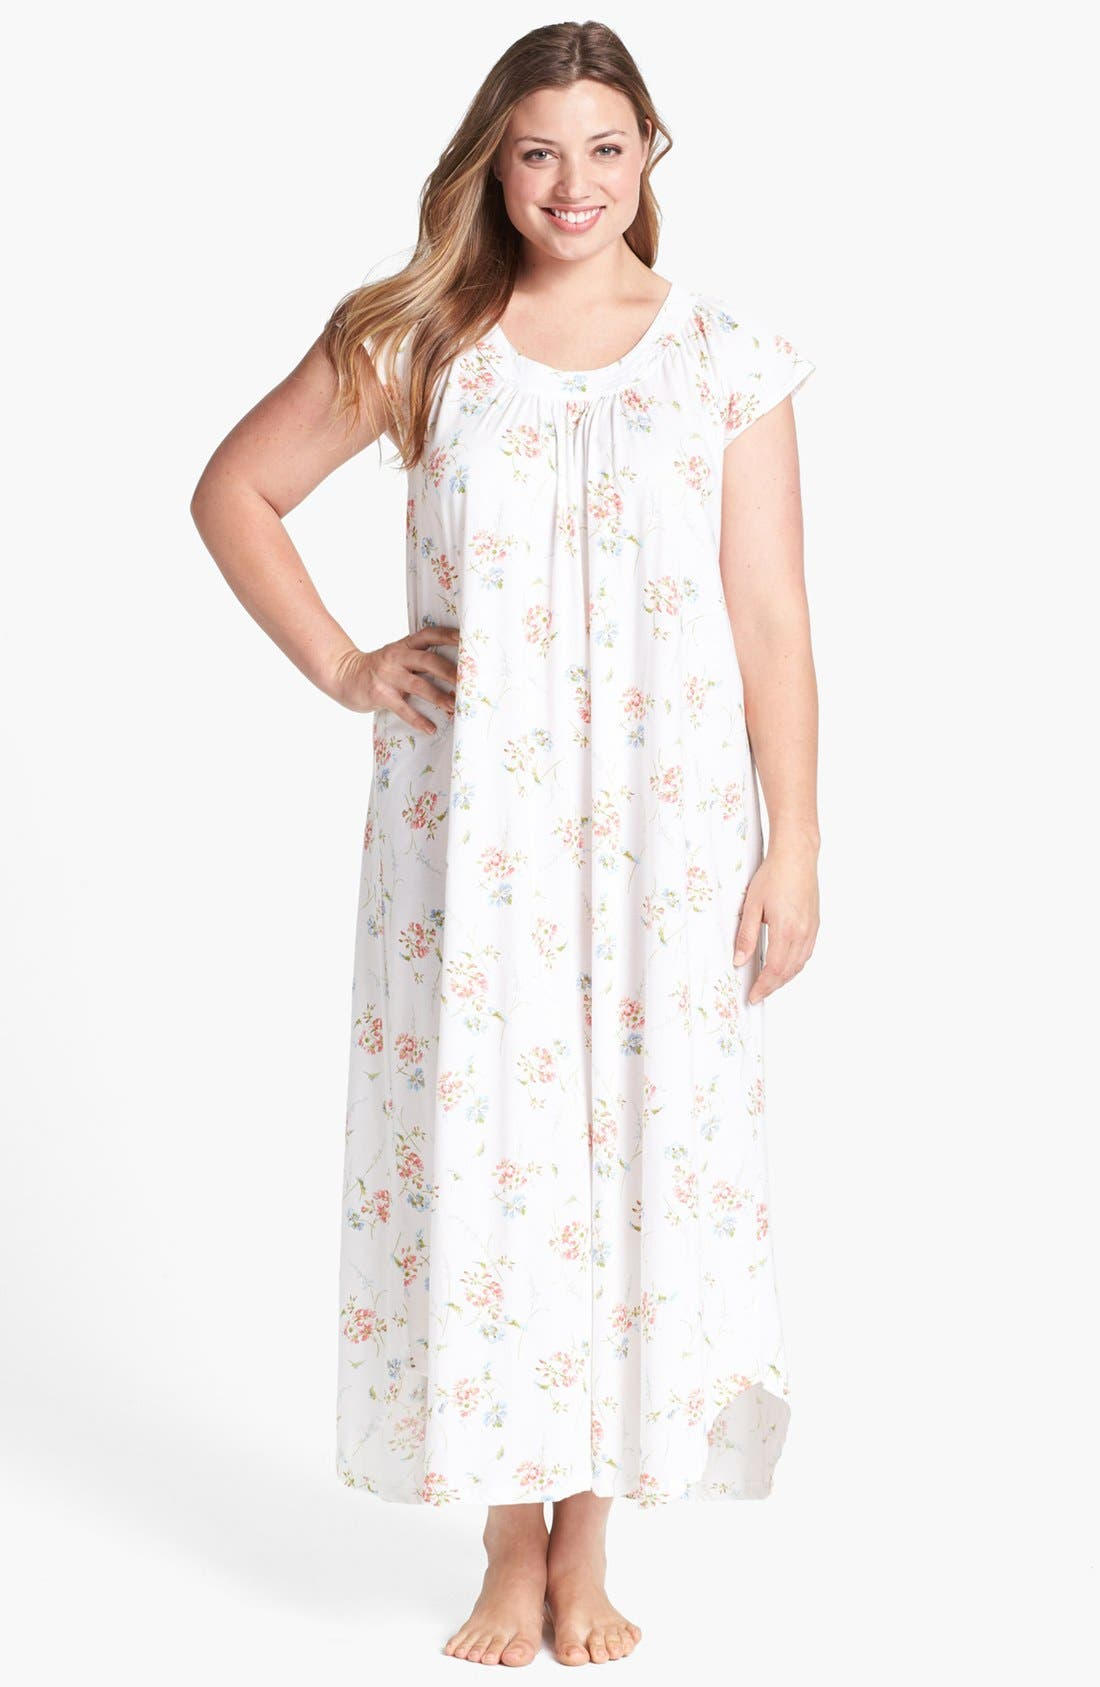 Alternate Image 1 Selected - Carole Hochman Designs 'Garden Delights' Nightgown (Plus Size)